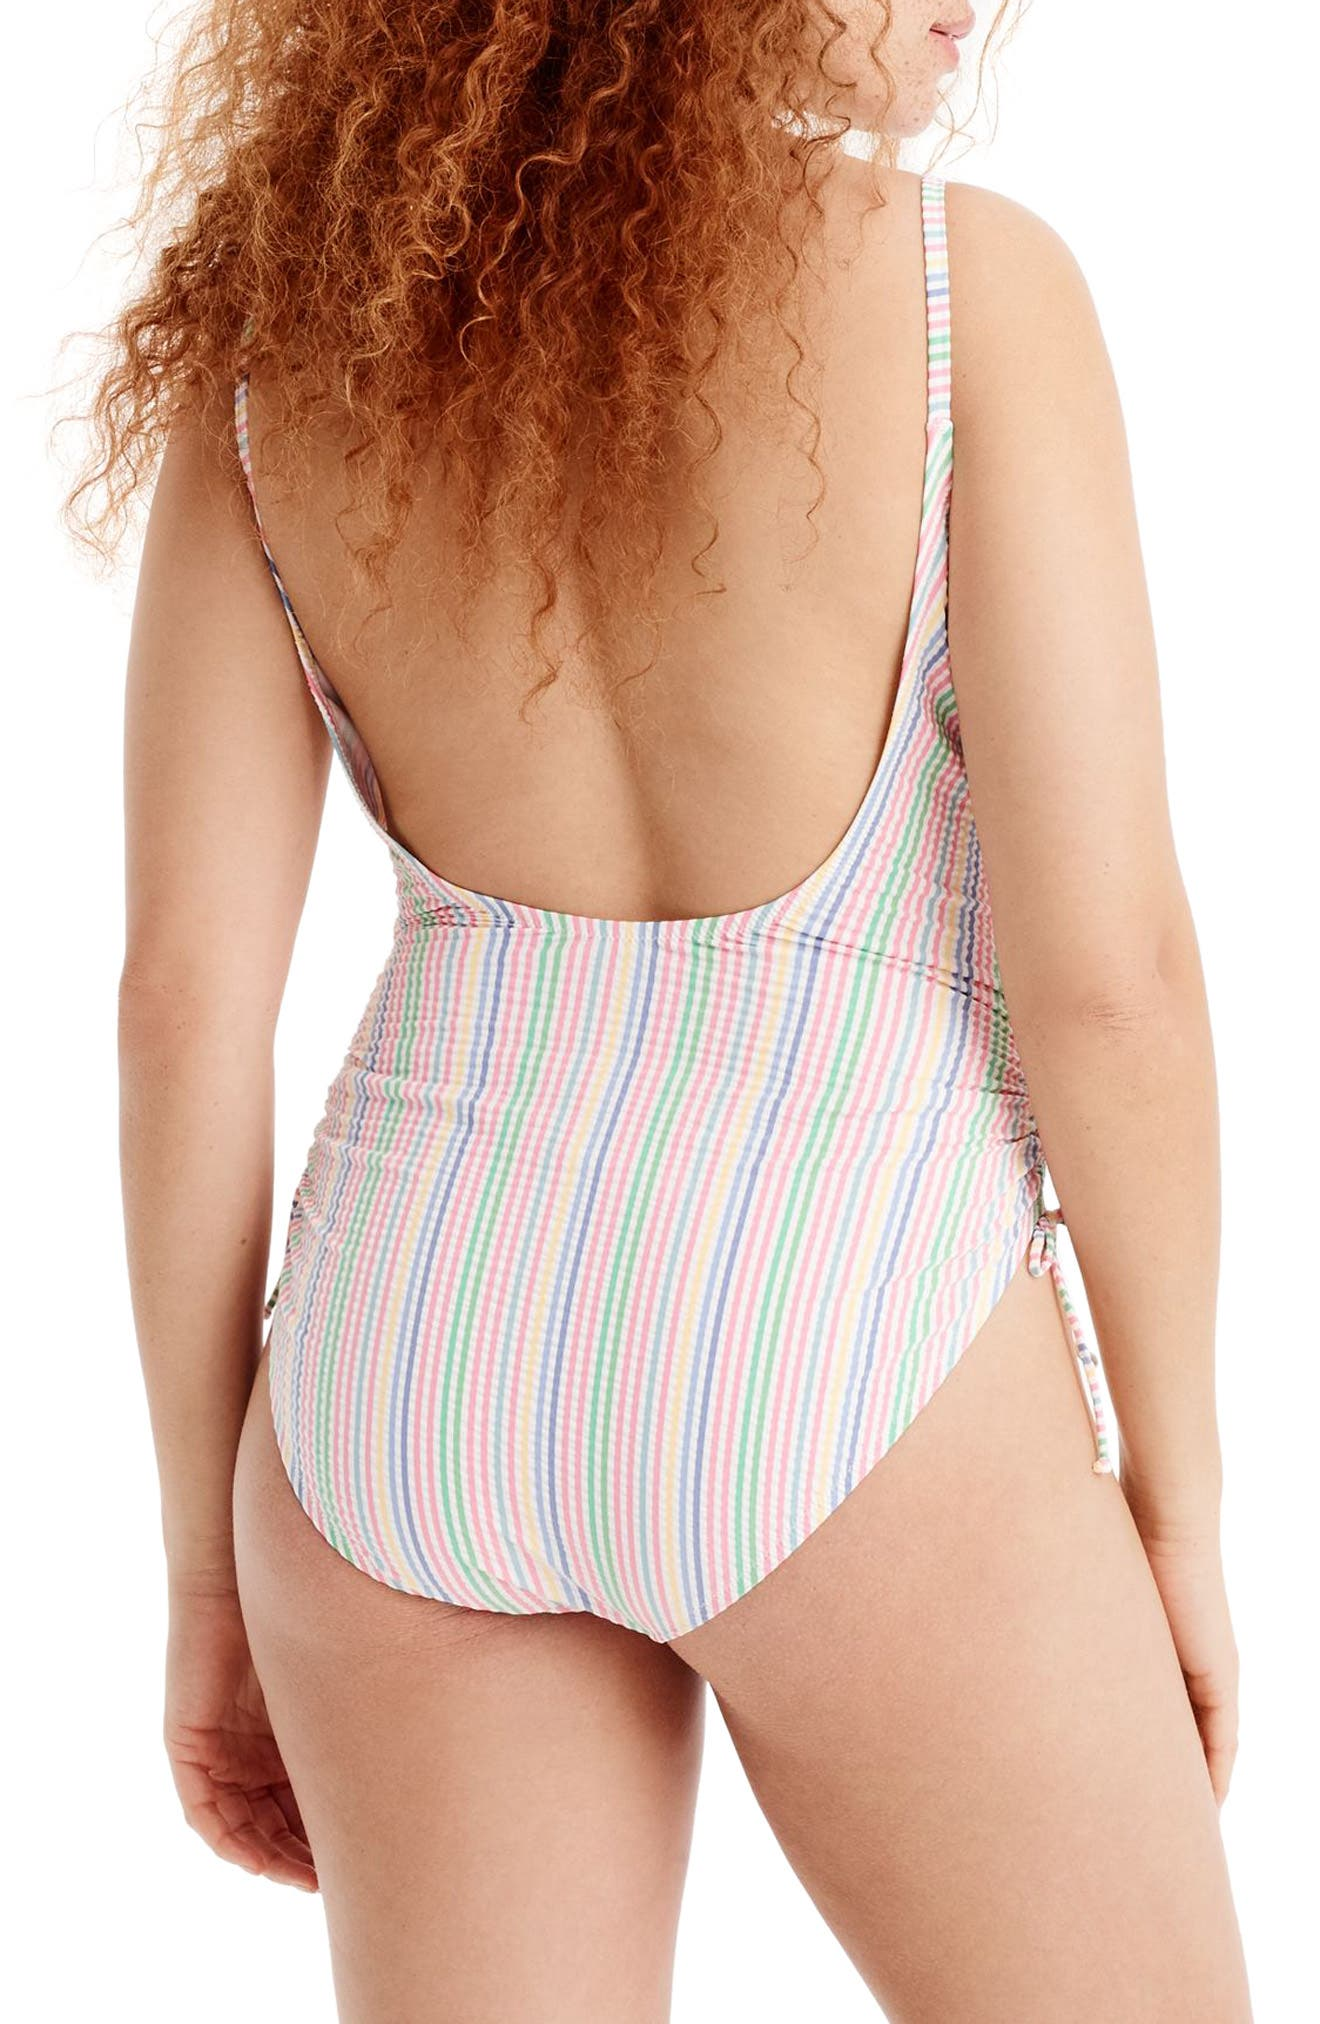 Ruched Seersucker One-Piece Swimsuit,                             Alternate thumbnail 2, color,                             Blue Multi